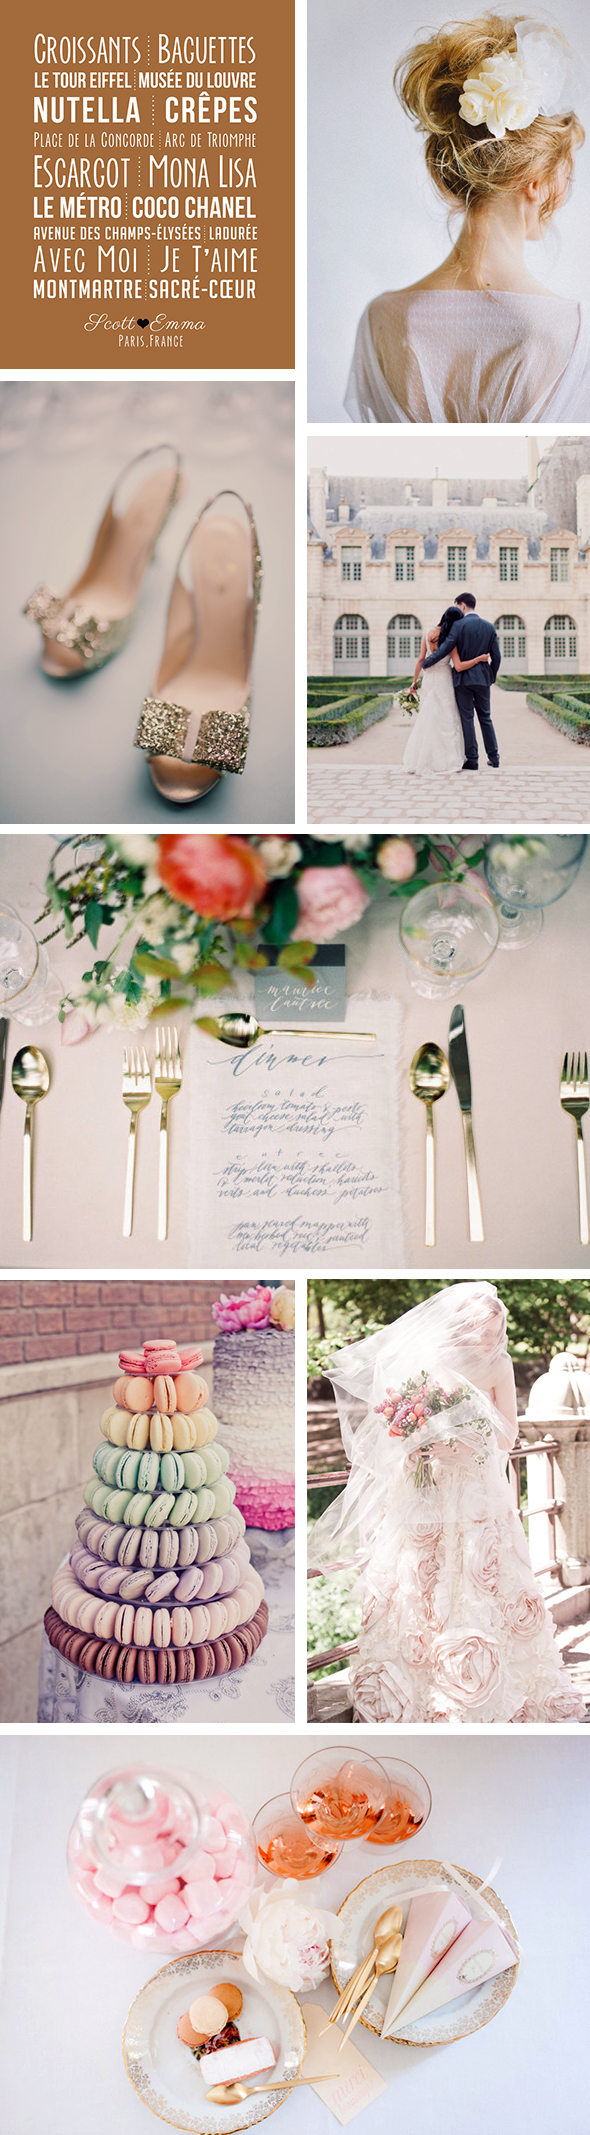 france destination weddings1 Whimsical Inspiration for a Paris Destination Wedding